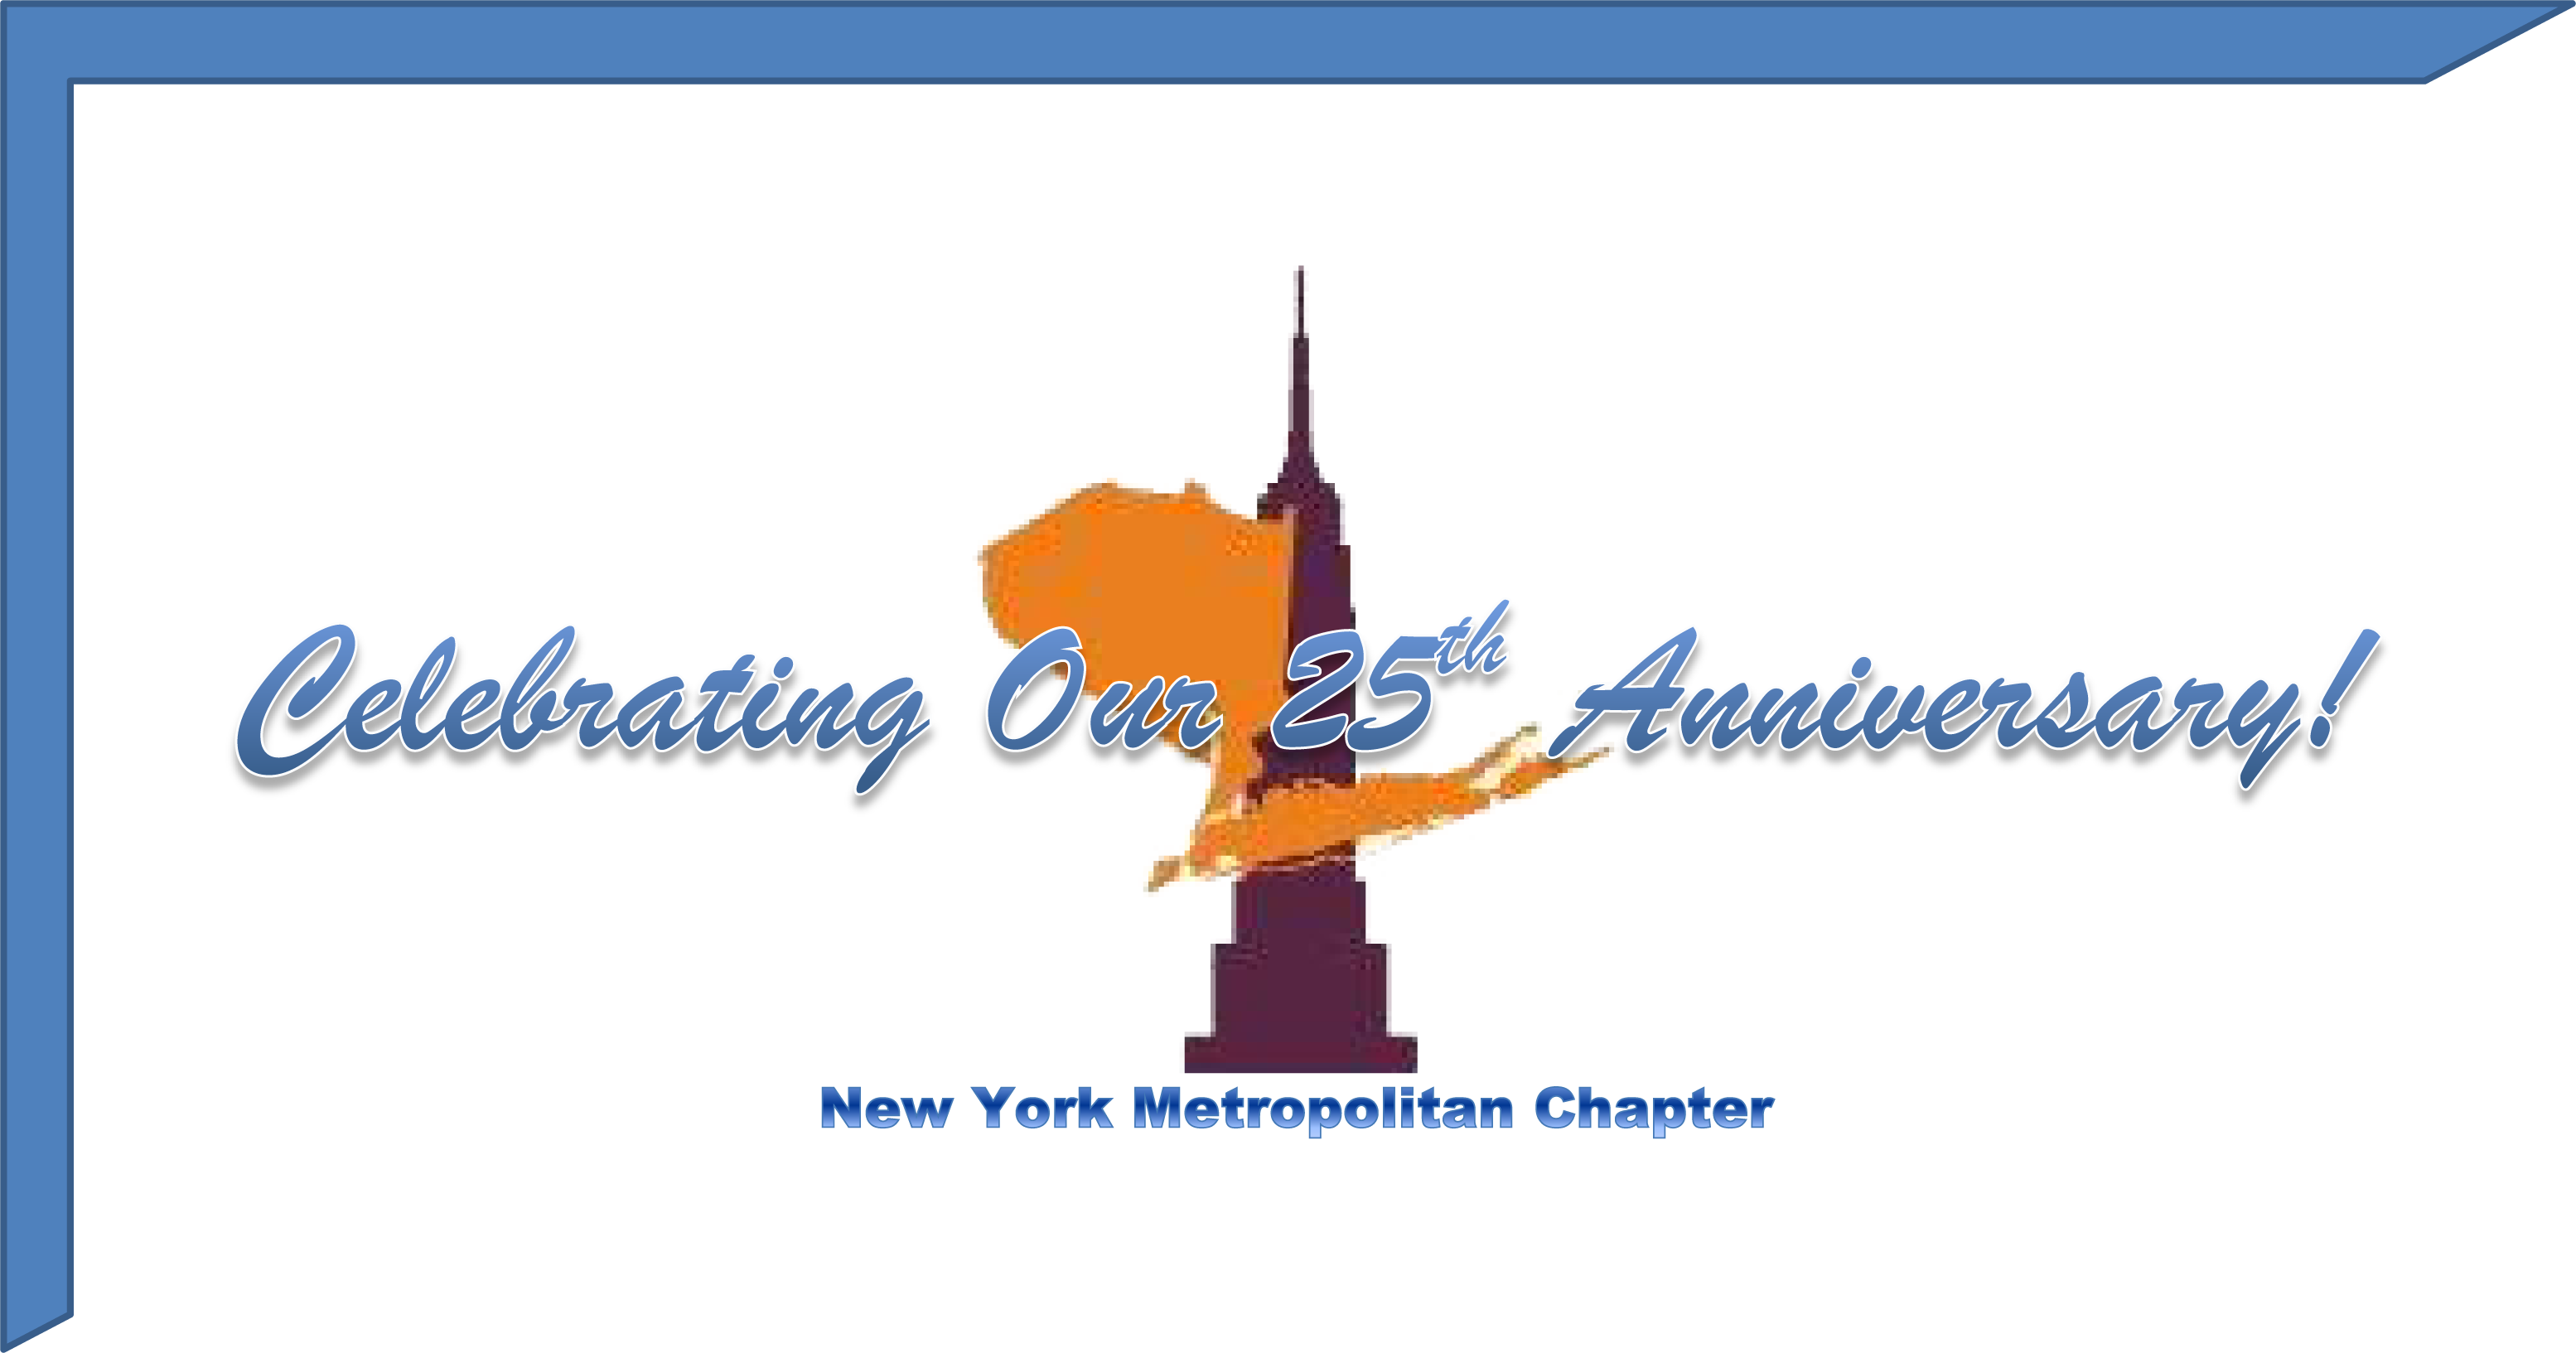 1990 to 2015.  The New York Metropolitan Chapter is celebrating its 25th anniversary.